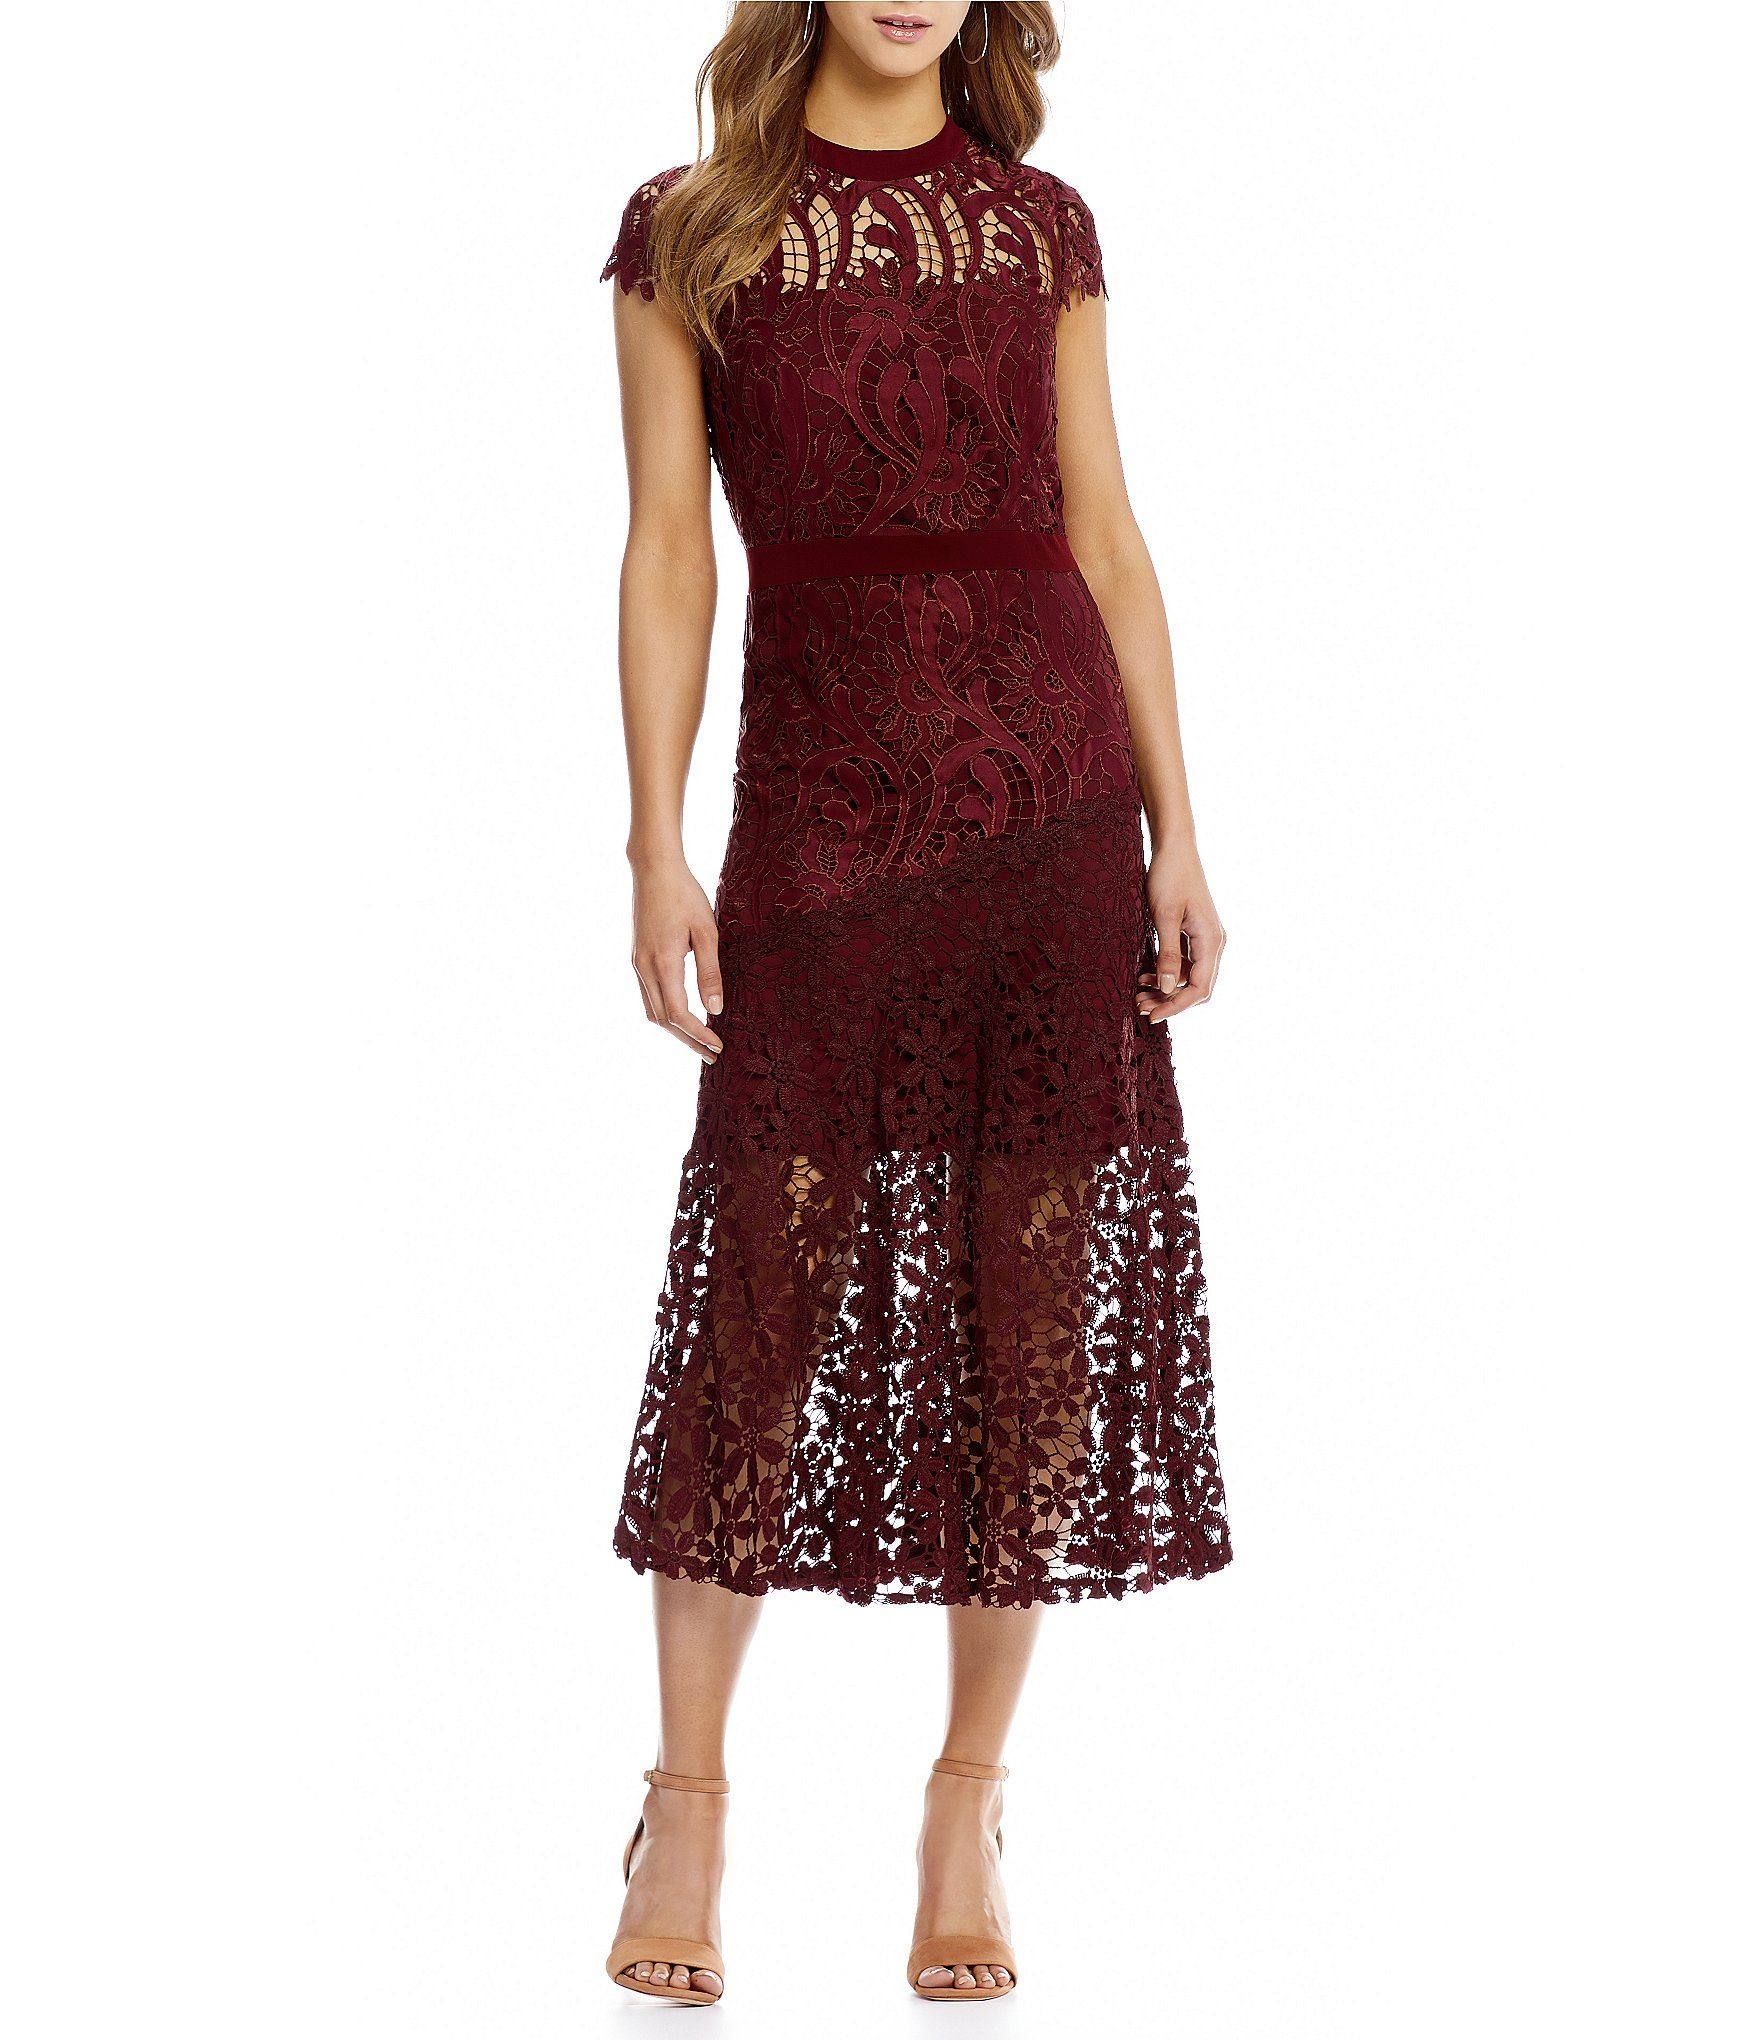 Antonio melani macie lace dress dillards my style pinterest antonio melani macie lace dress dillards ombrellifo Choice Image